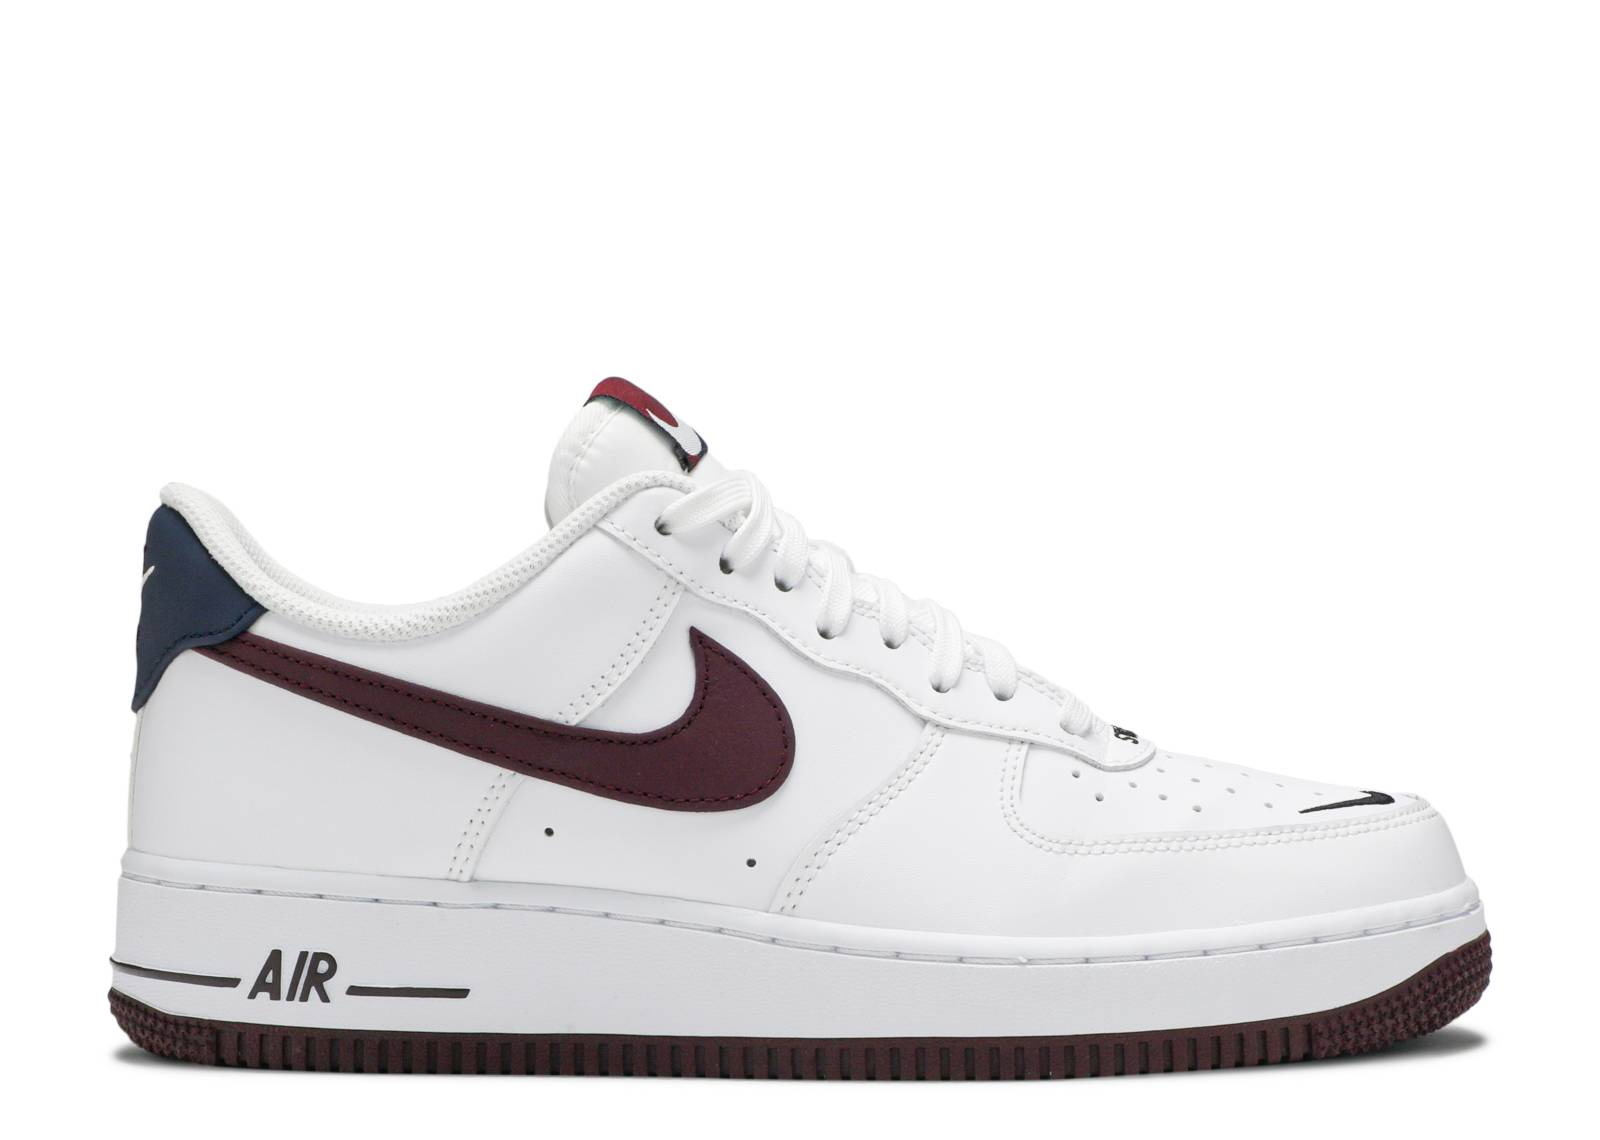 Air Force 1 '07 LV8 'White Night Maroon'